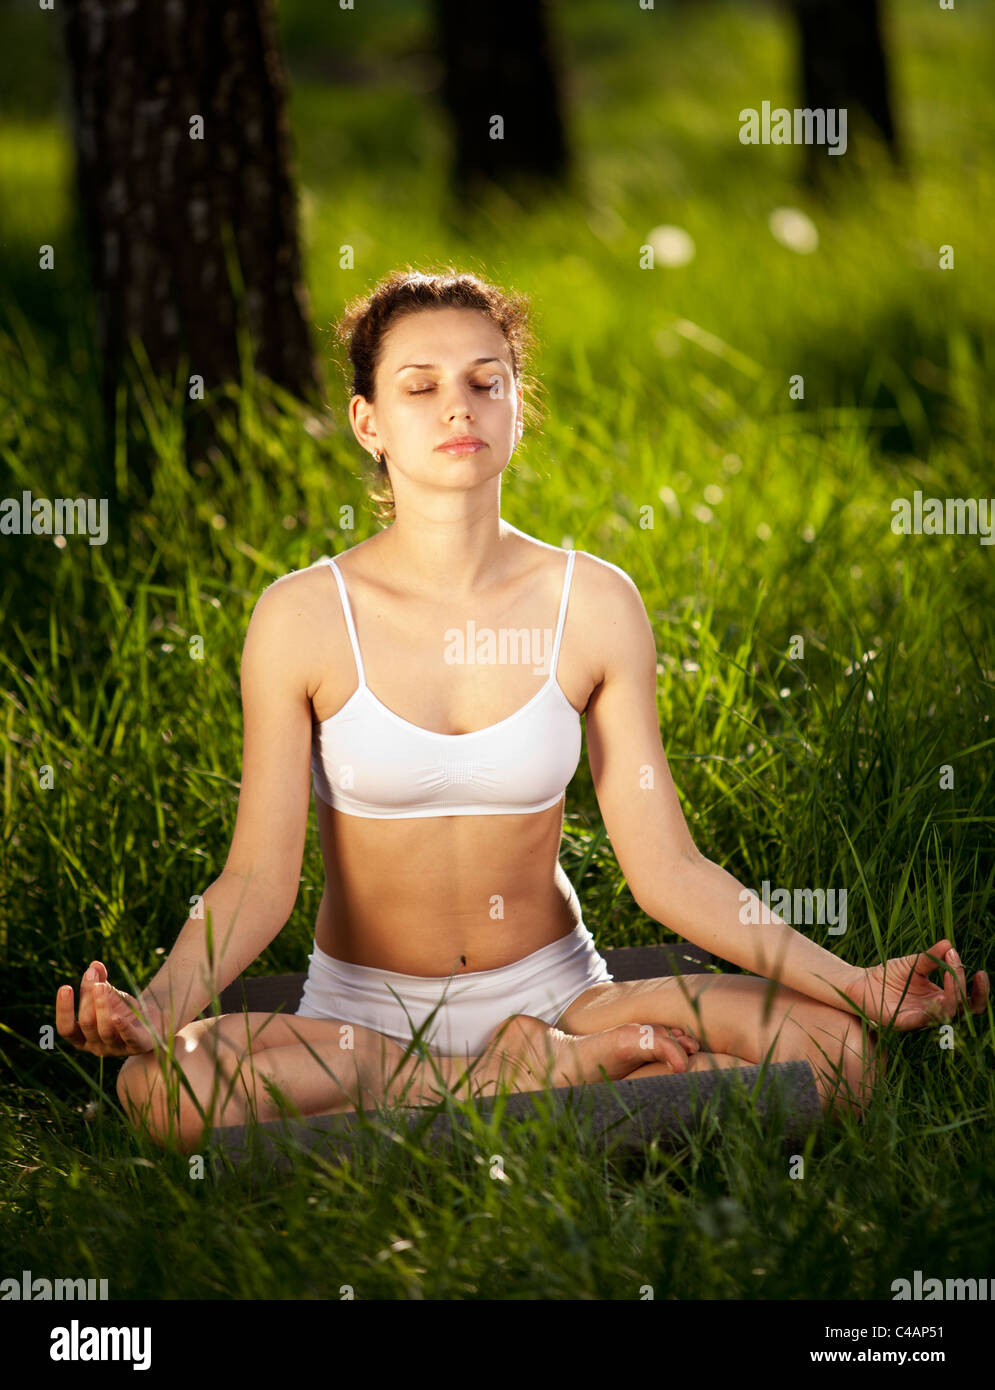 Practicing of yoga outdoors. Stock Photo